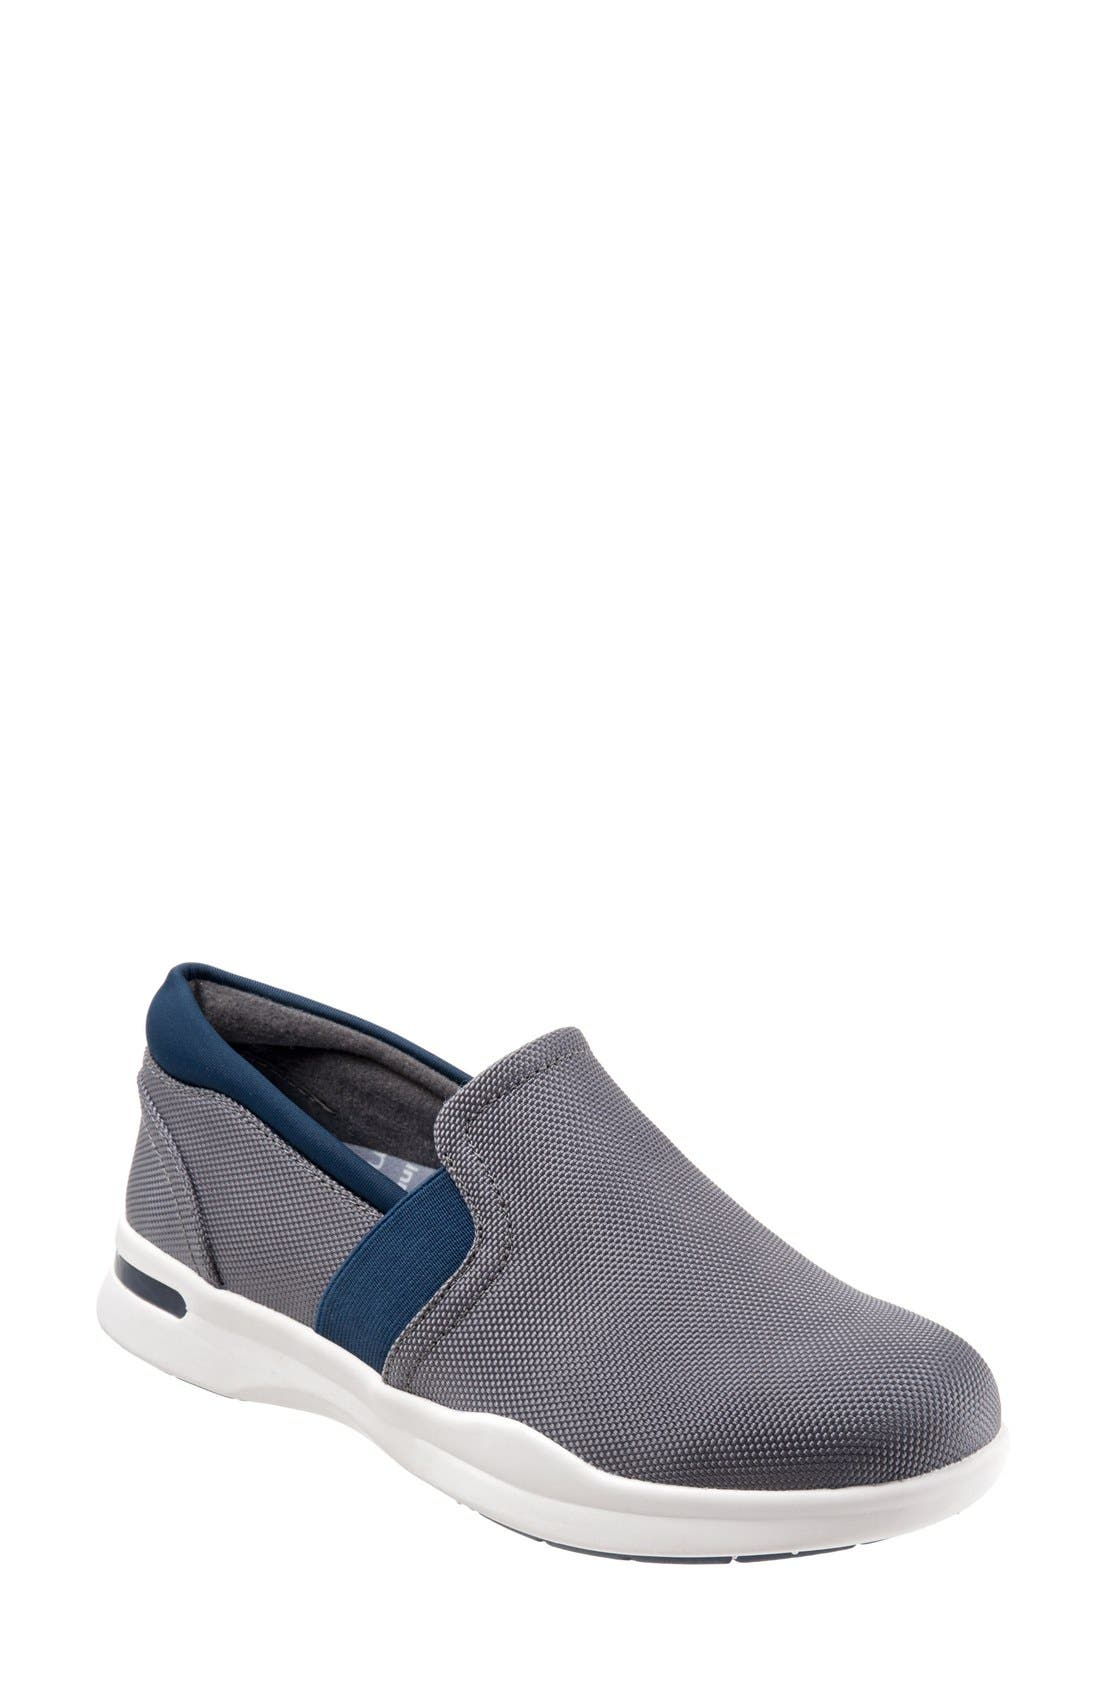 Softwalk® 'Vantage' Slip-On Sneaker (Women)